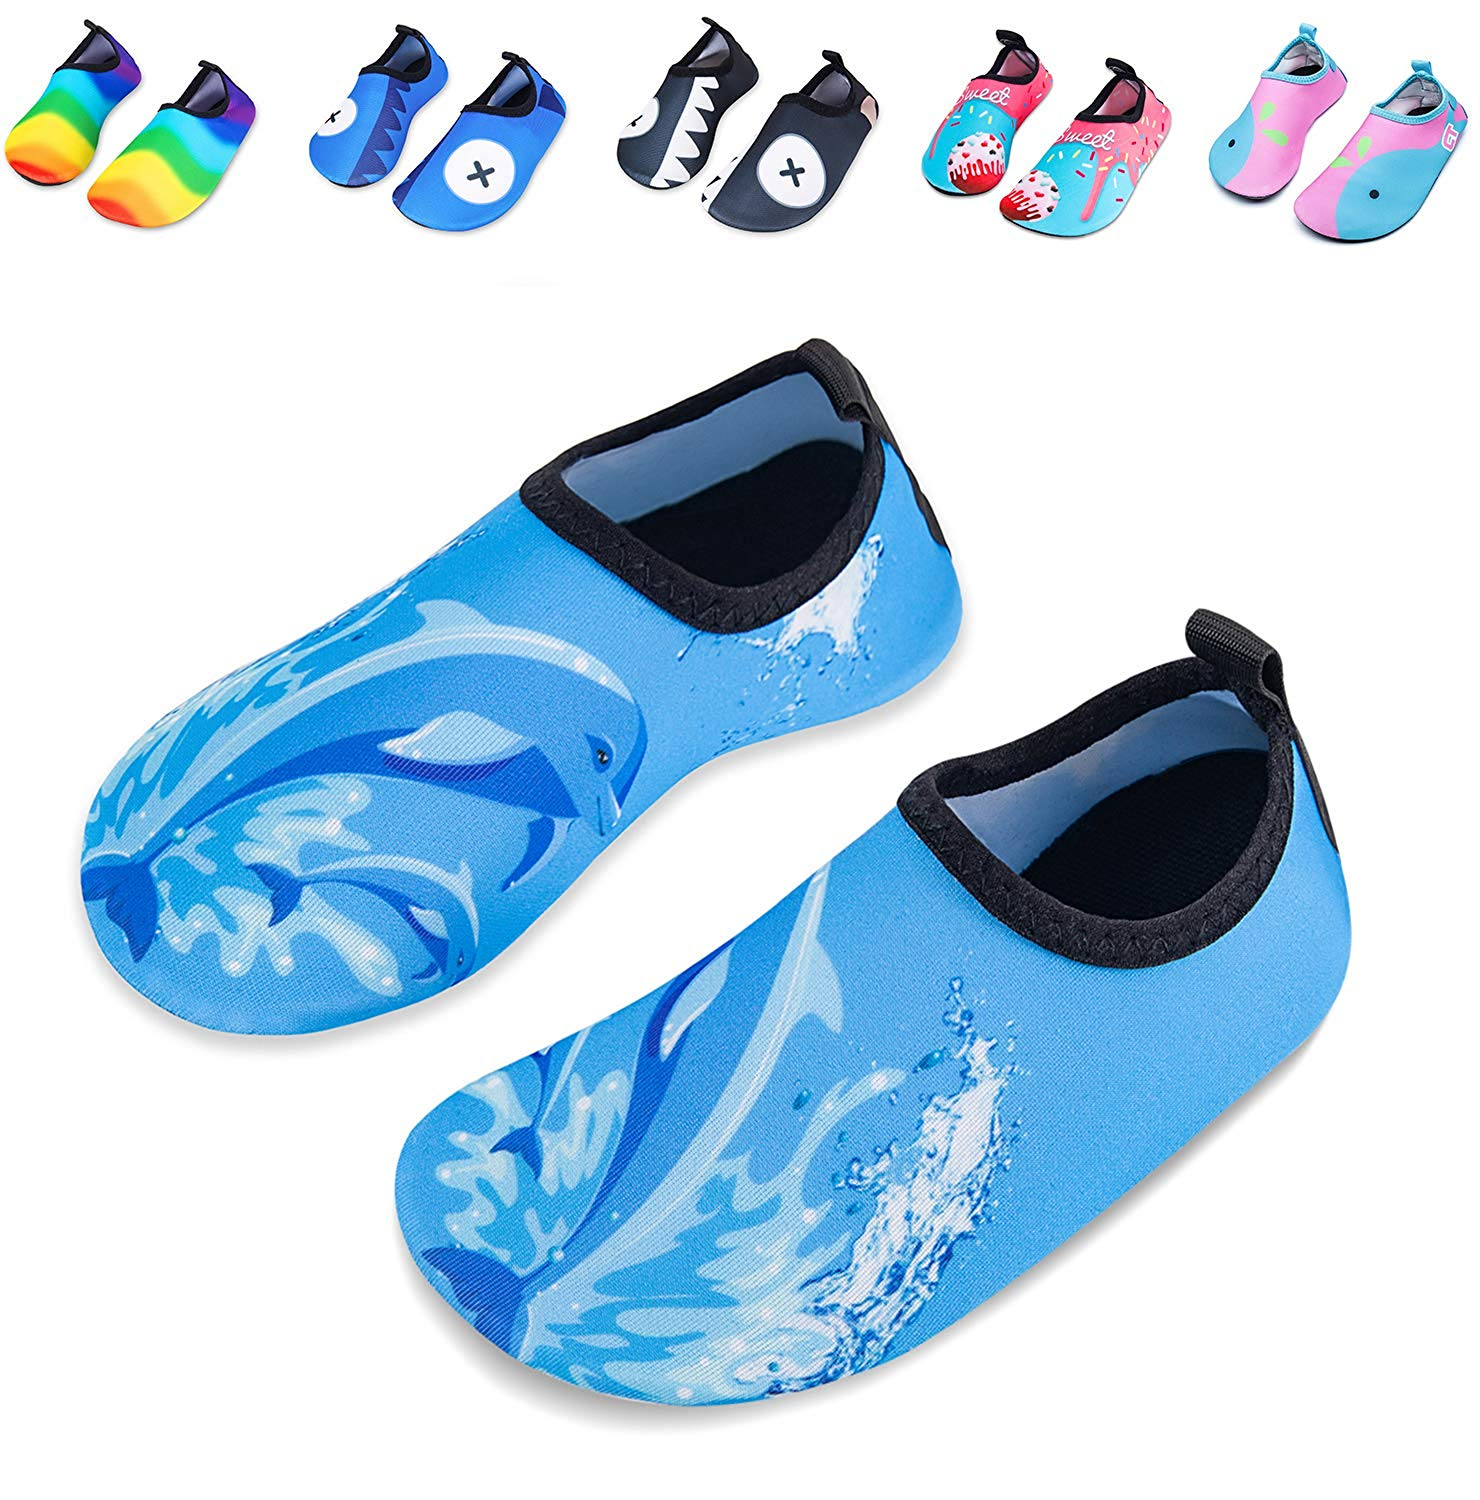 351bc7999b53 Get Quotations · Mabove Kids Swim Water Shoes Non-Slip Quick Dry Barefoot Aqua  Pool Socks Shoes for